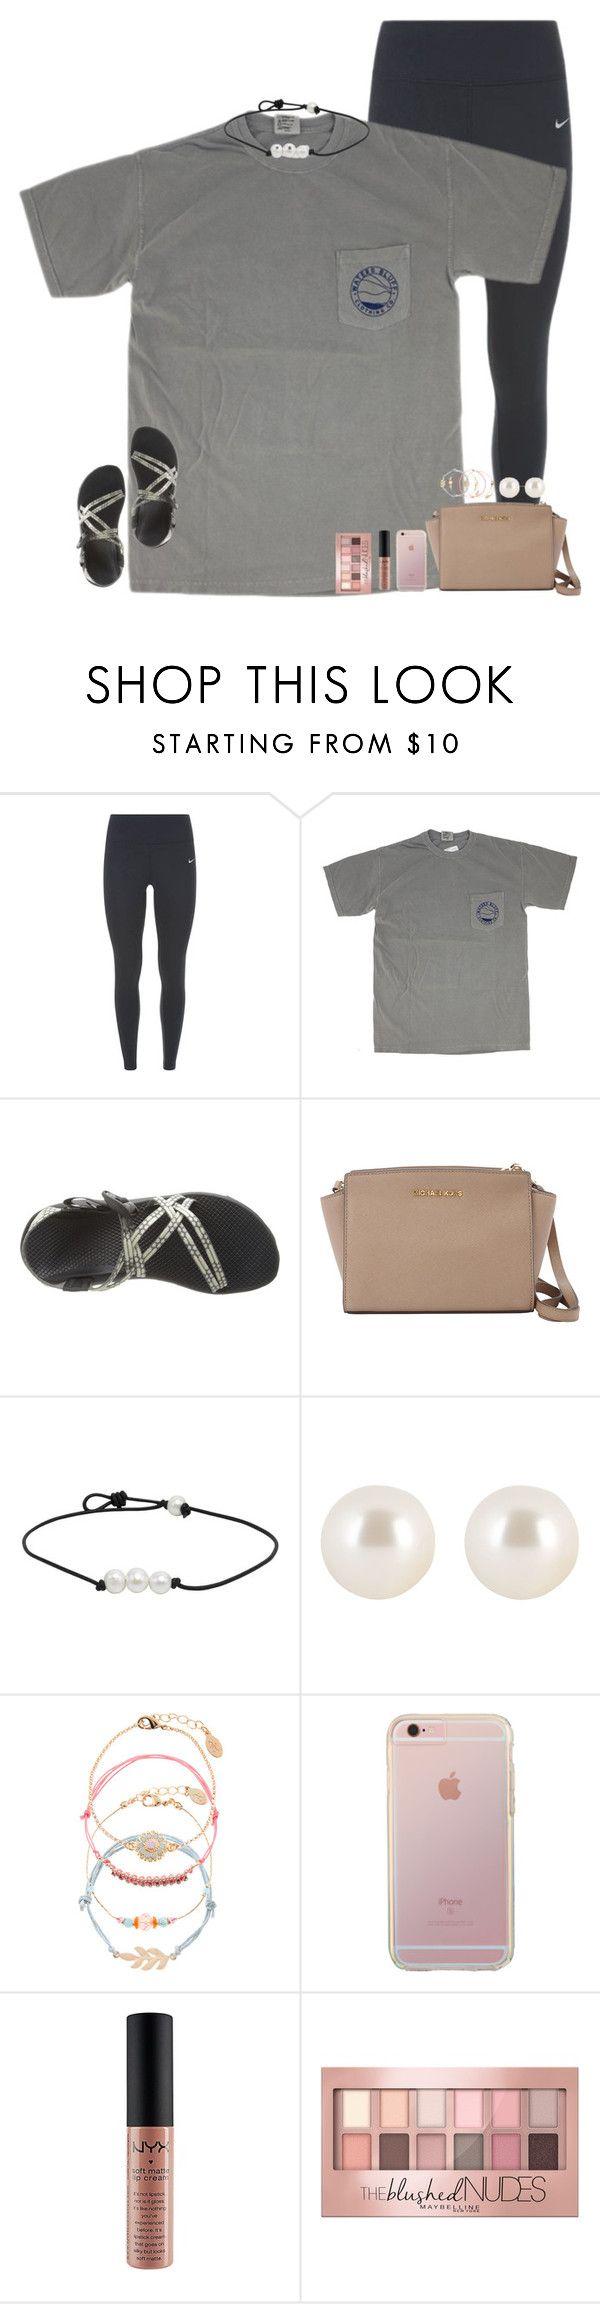 """day 1 of contest!"" by hmcdaniel01 ❤ liked on Polyvore featuring NIKE, Chaco, MICHAEL Michael Kors, Henri Bendel, Accessorize, NYX, Maybelline and sophiesislandvacation"